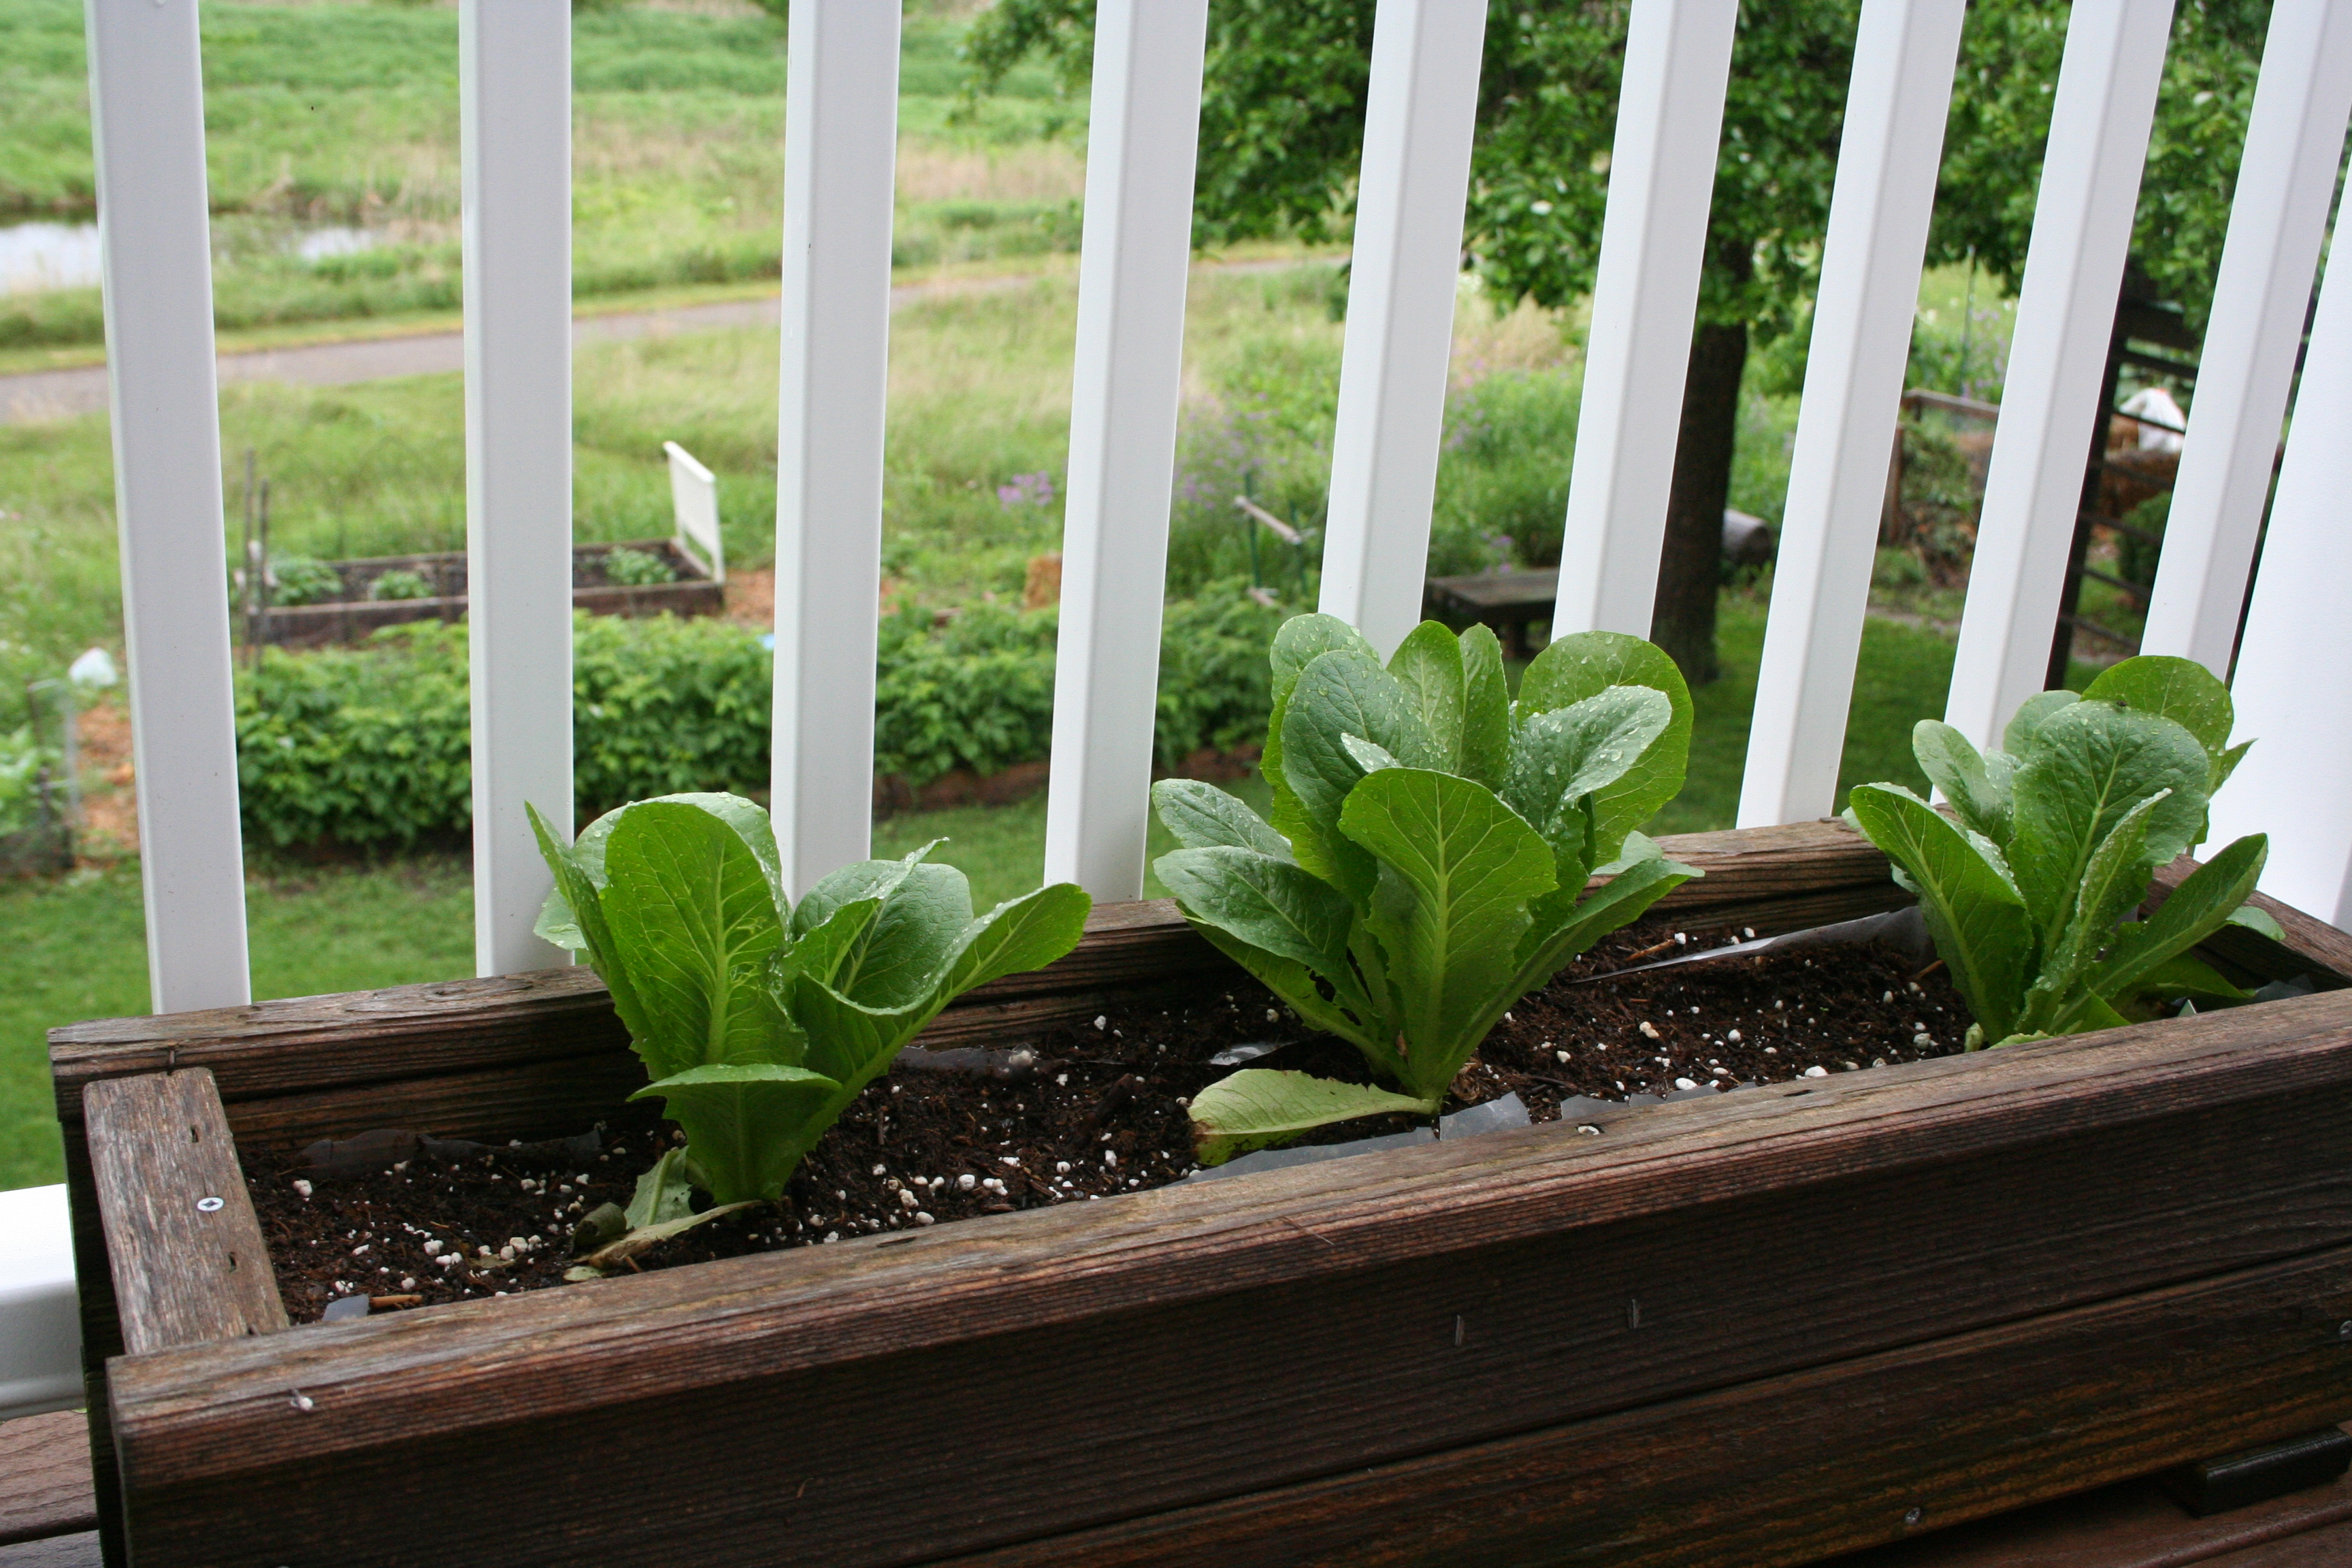 Deck Vegetable Garden is Looking Good My Northern Garden